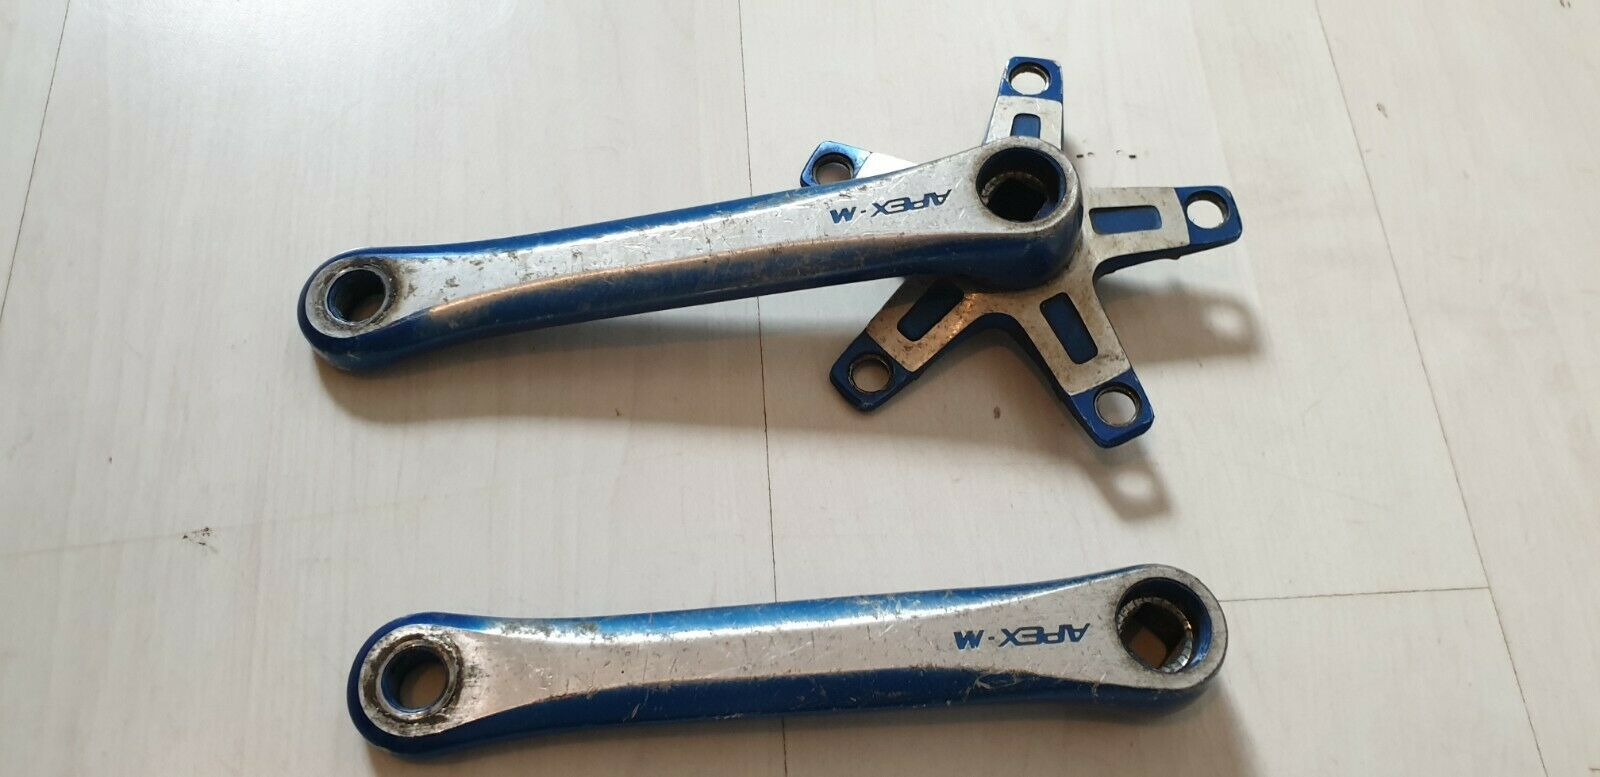 Vintage SR Apex M old School Bmx cranks